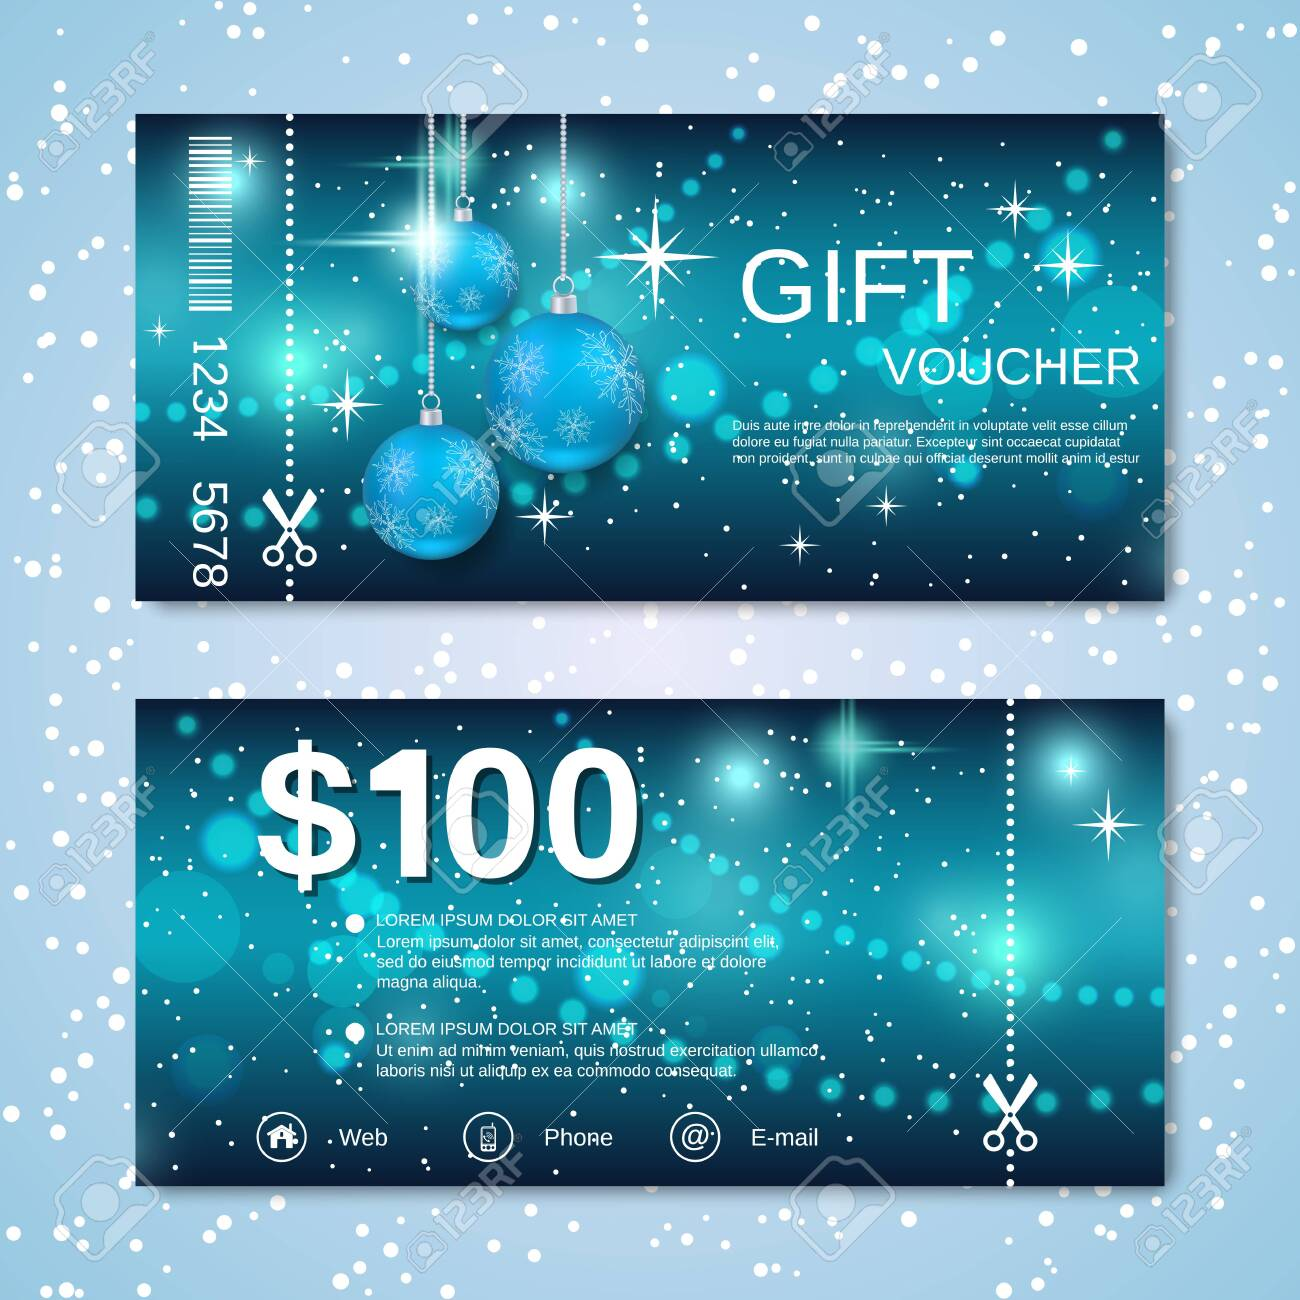 Christmas and New Year discount coupon, gift voucher vector template - 130595735